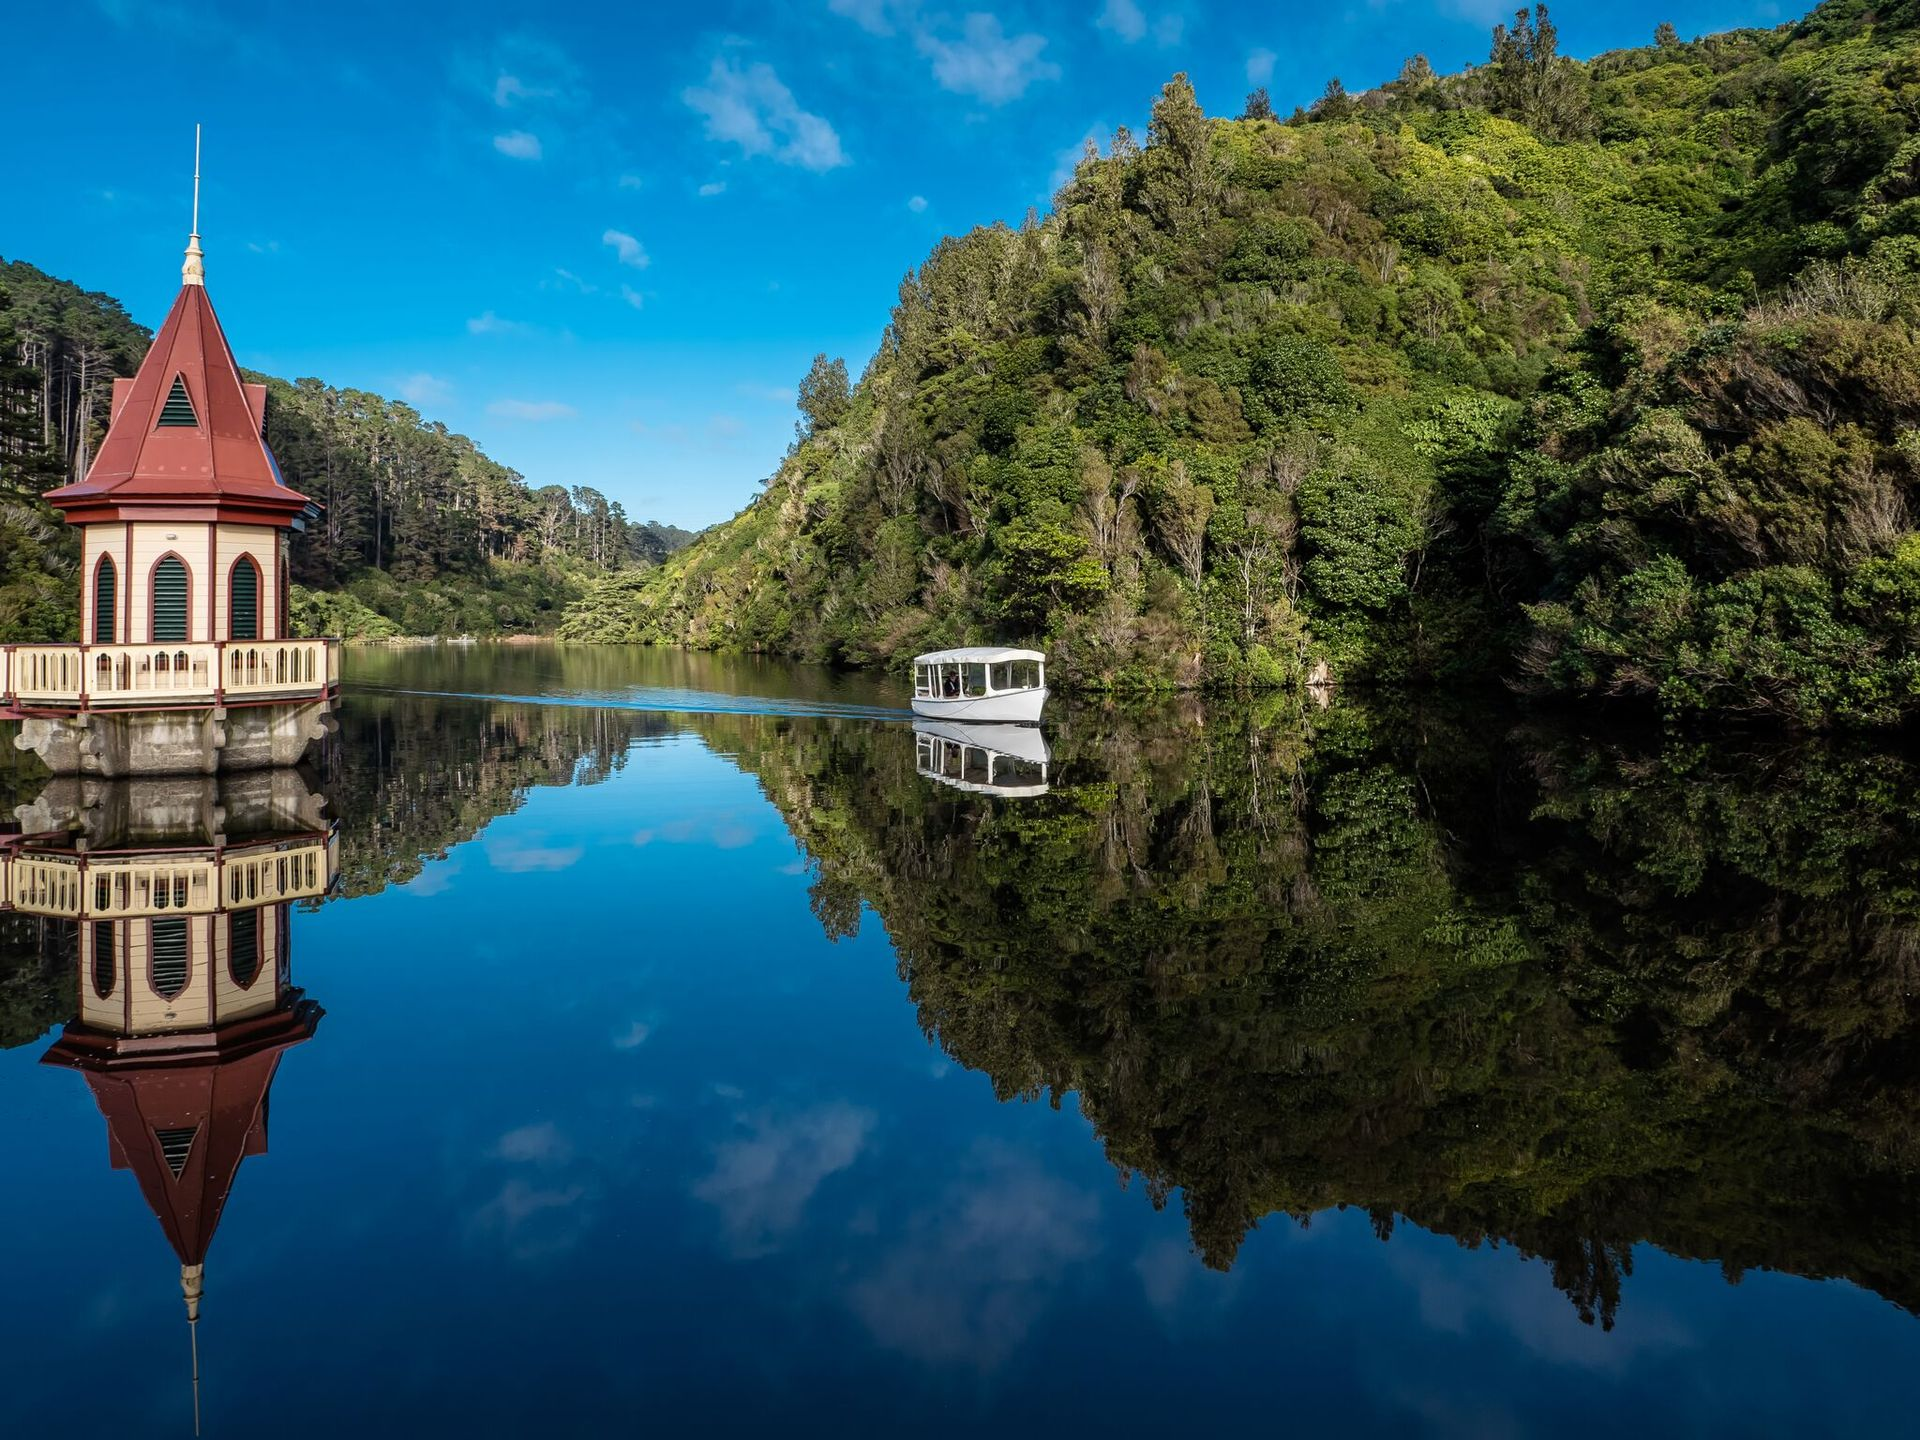 Zealandia ecosanctuary named one of TIME's 100 Greatest Places of 2019